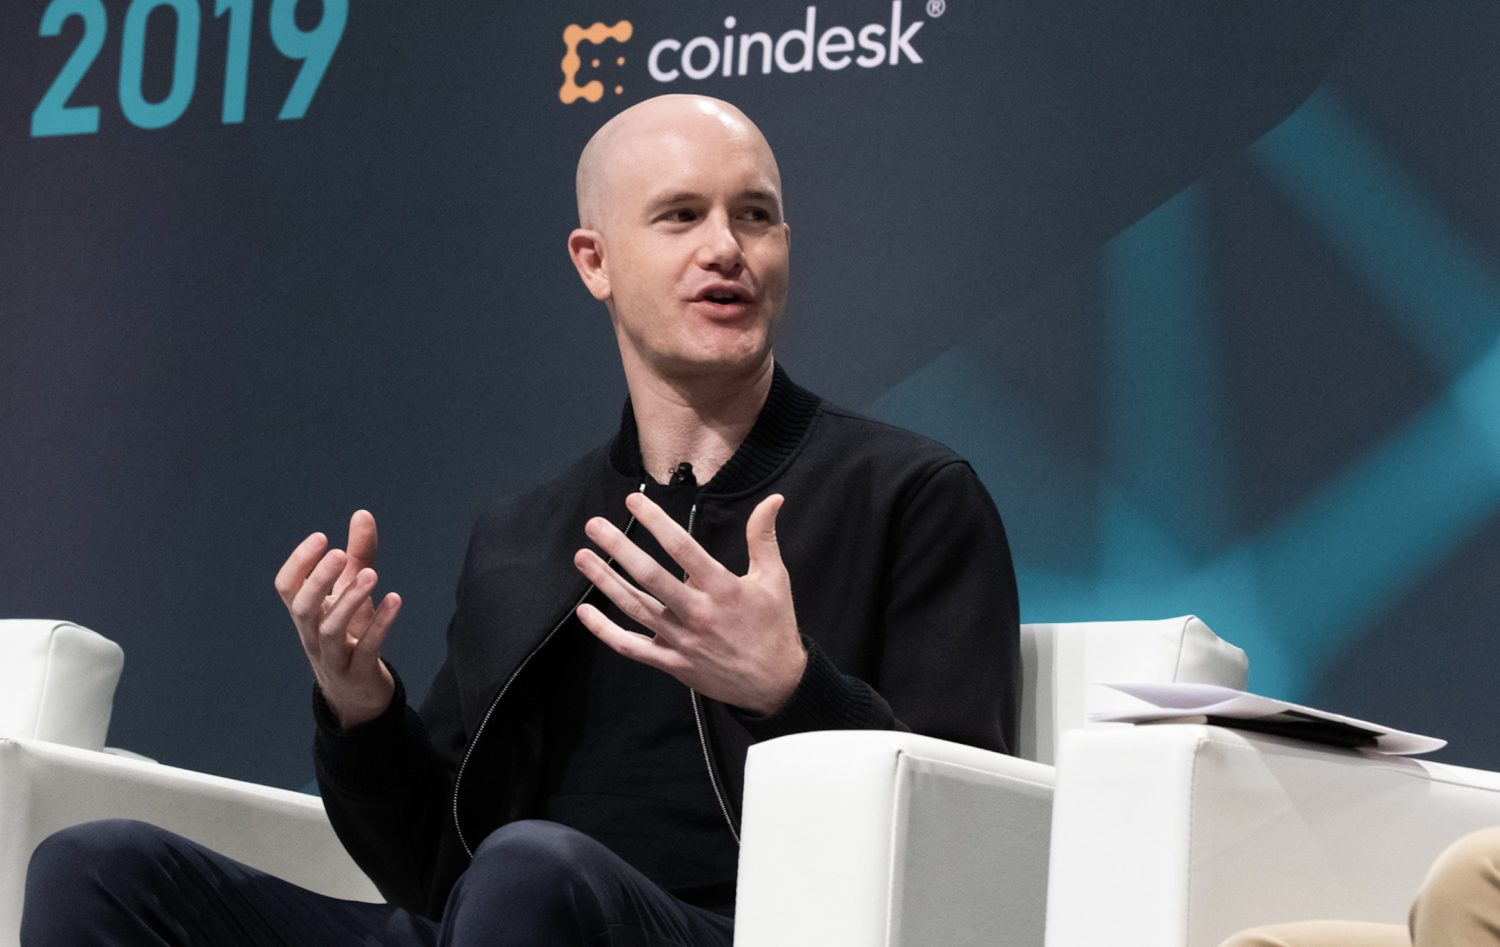 Coinbase Buys Tagomi as 'Foundation' of Institutional Trading Arm - CoinDesk